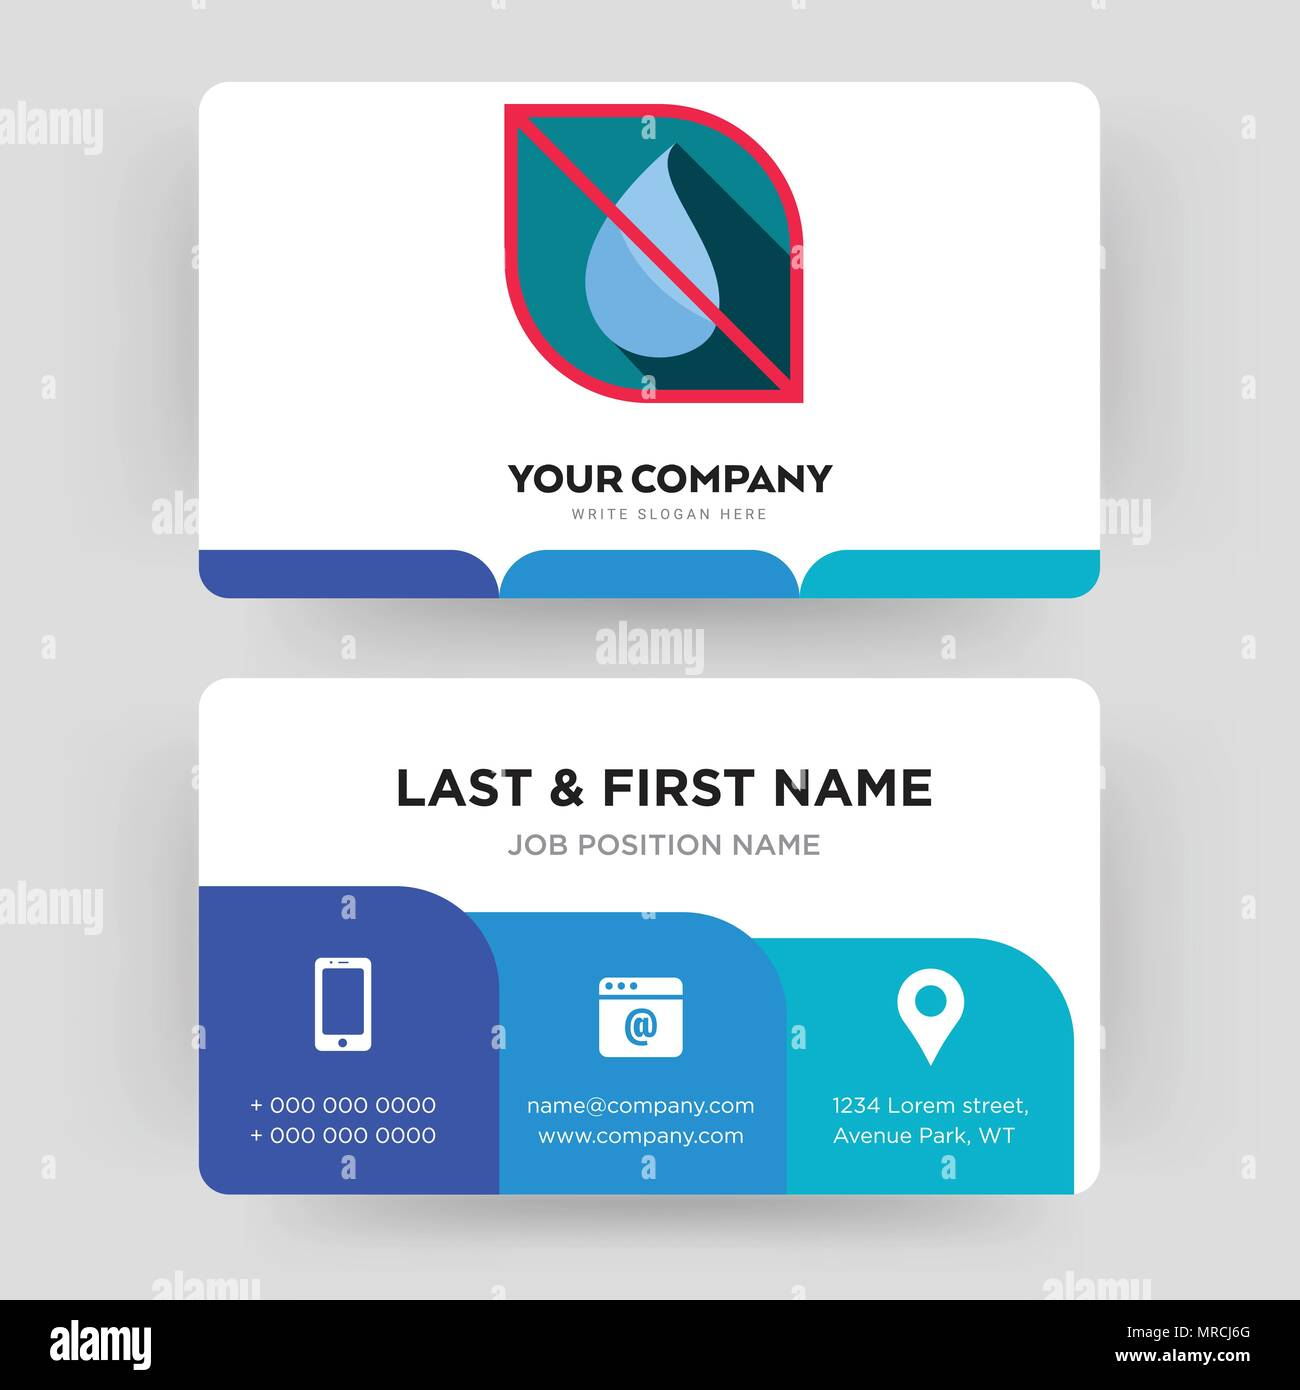 No water business card design template visiting for your company no water business card design template visiting for your company modern creative and clean identity card vector colourmoves